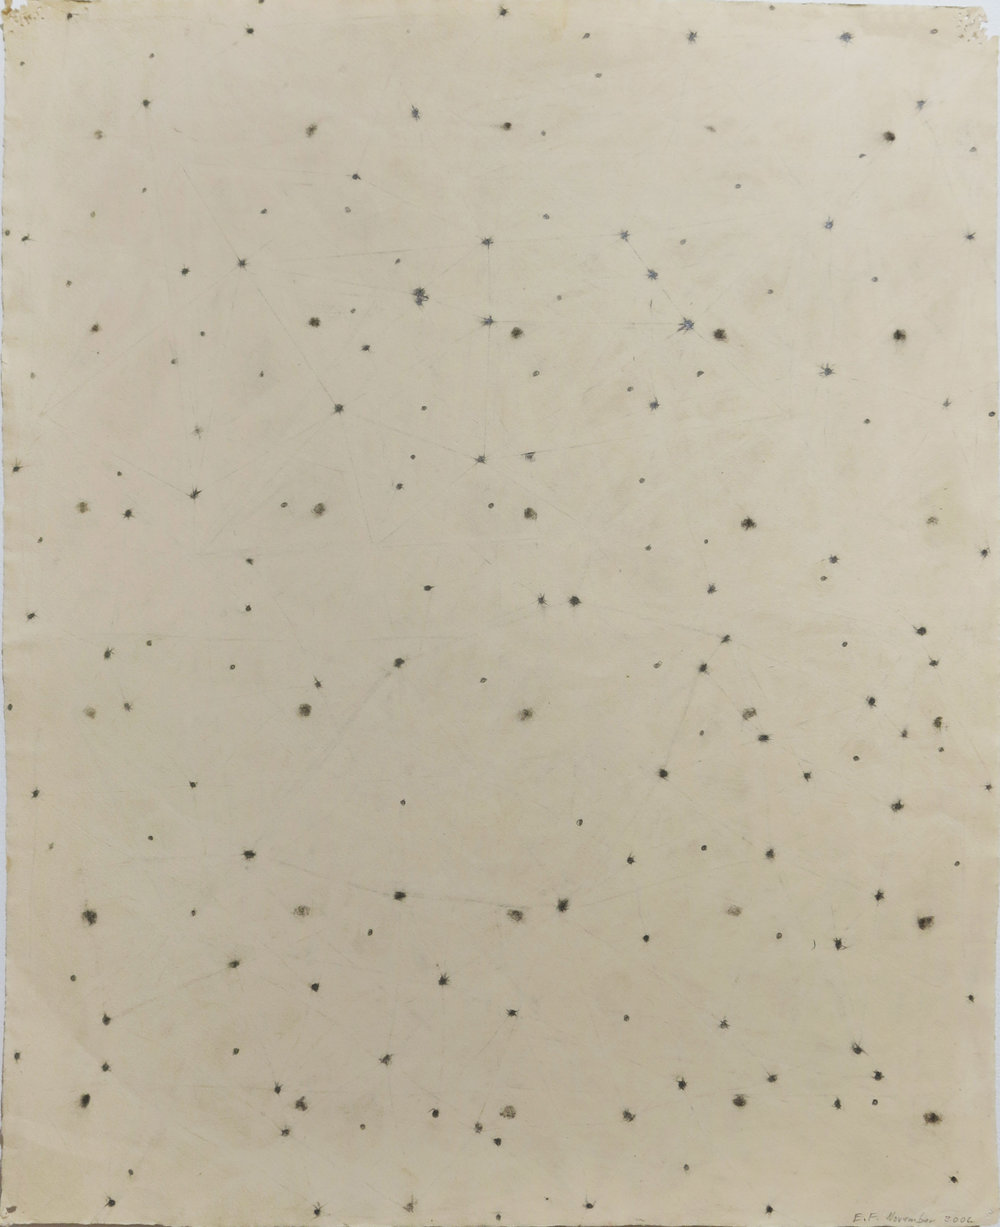 Edward Finnegan,  (Constellation series) , November, 2006, Graphite on paper, 25h x 20w in.